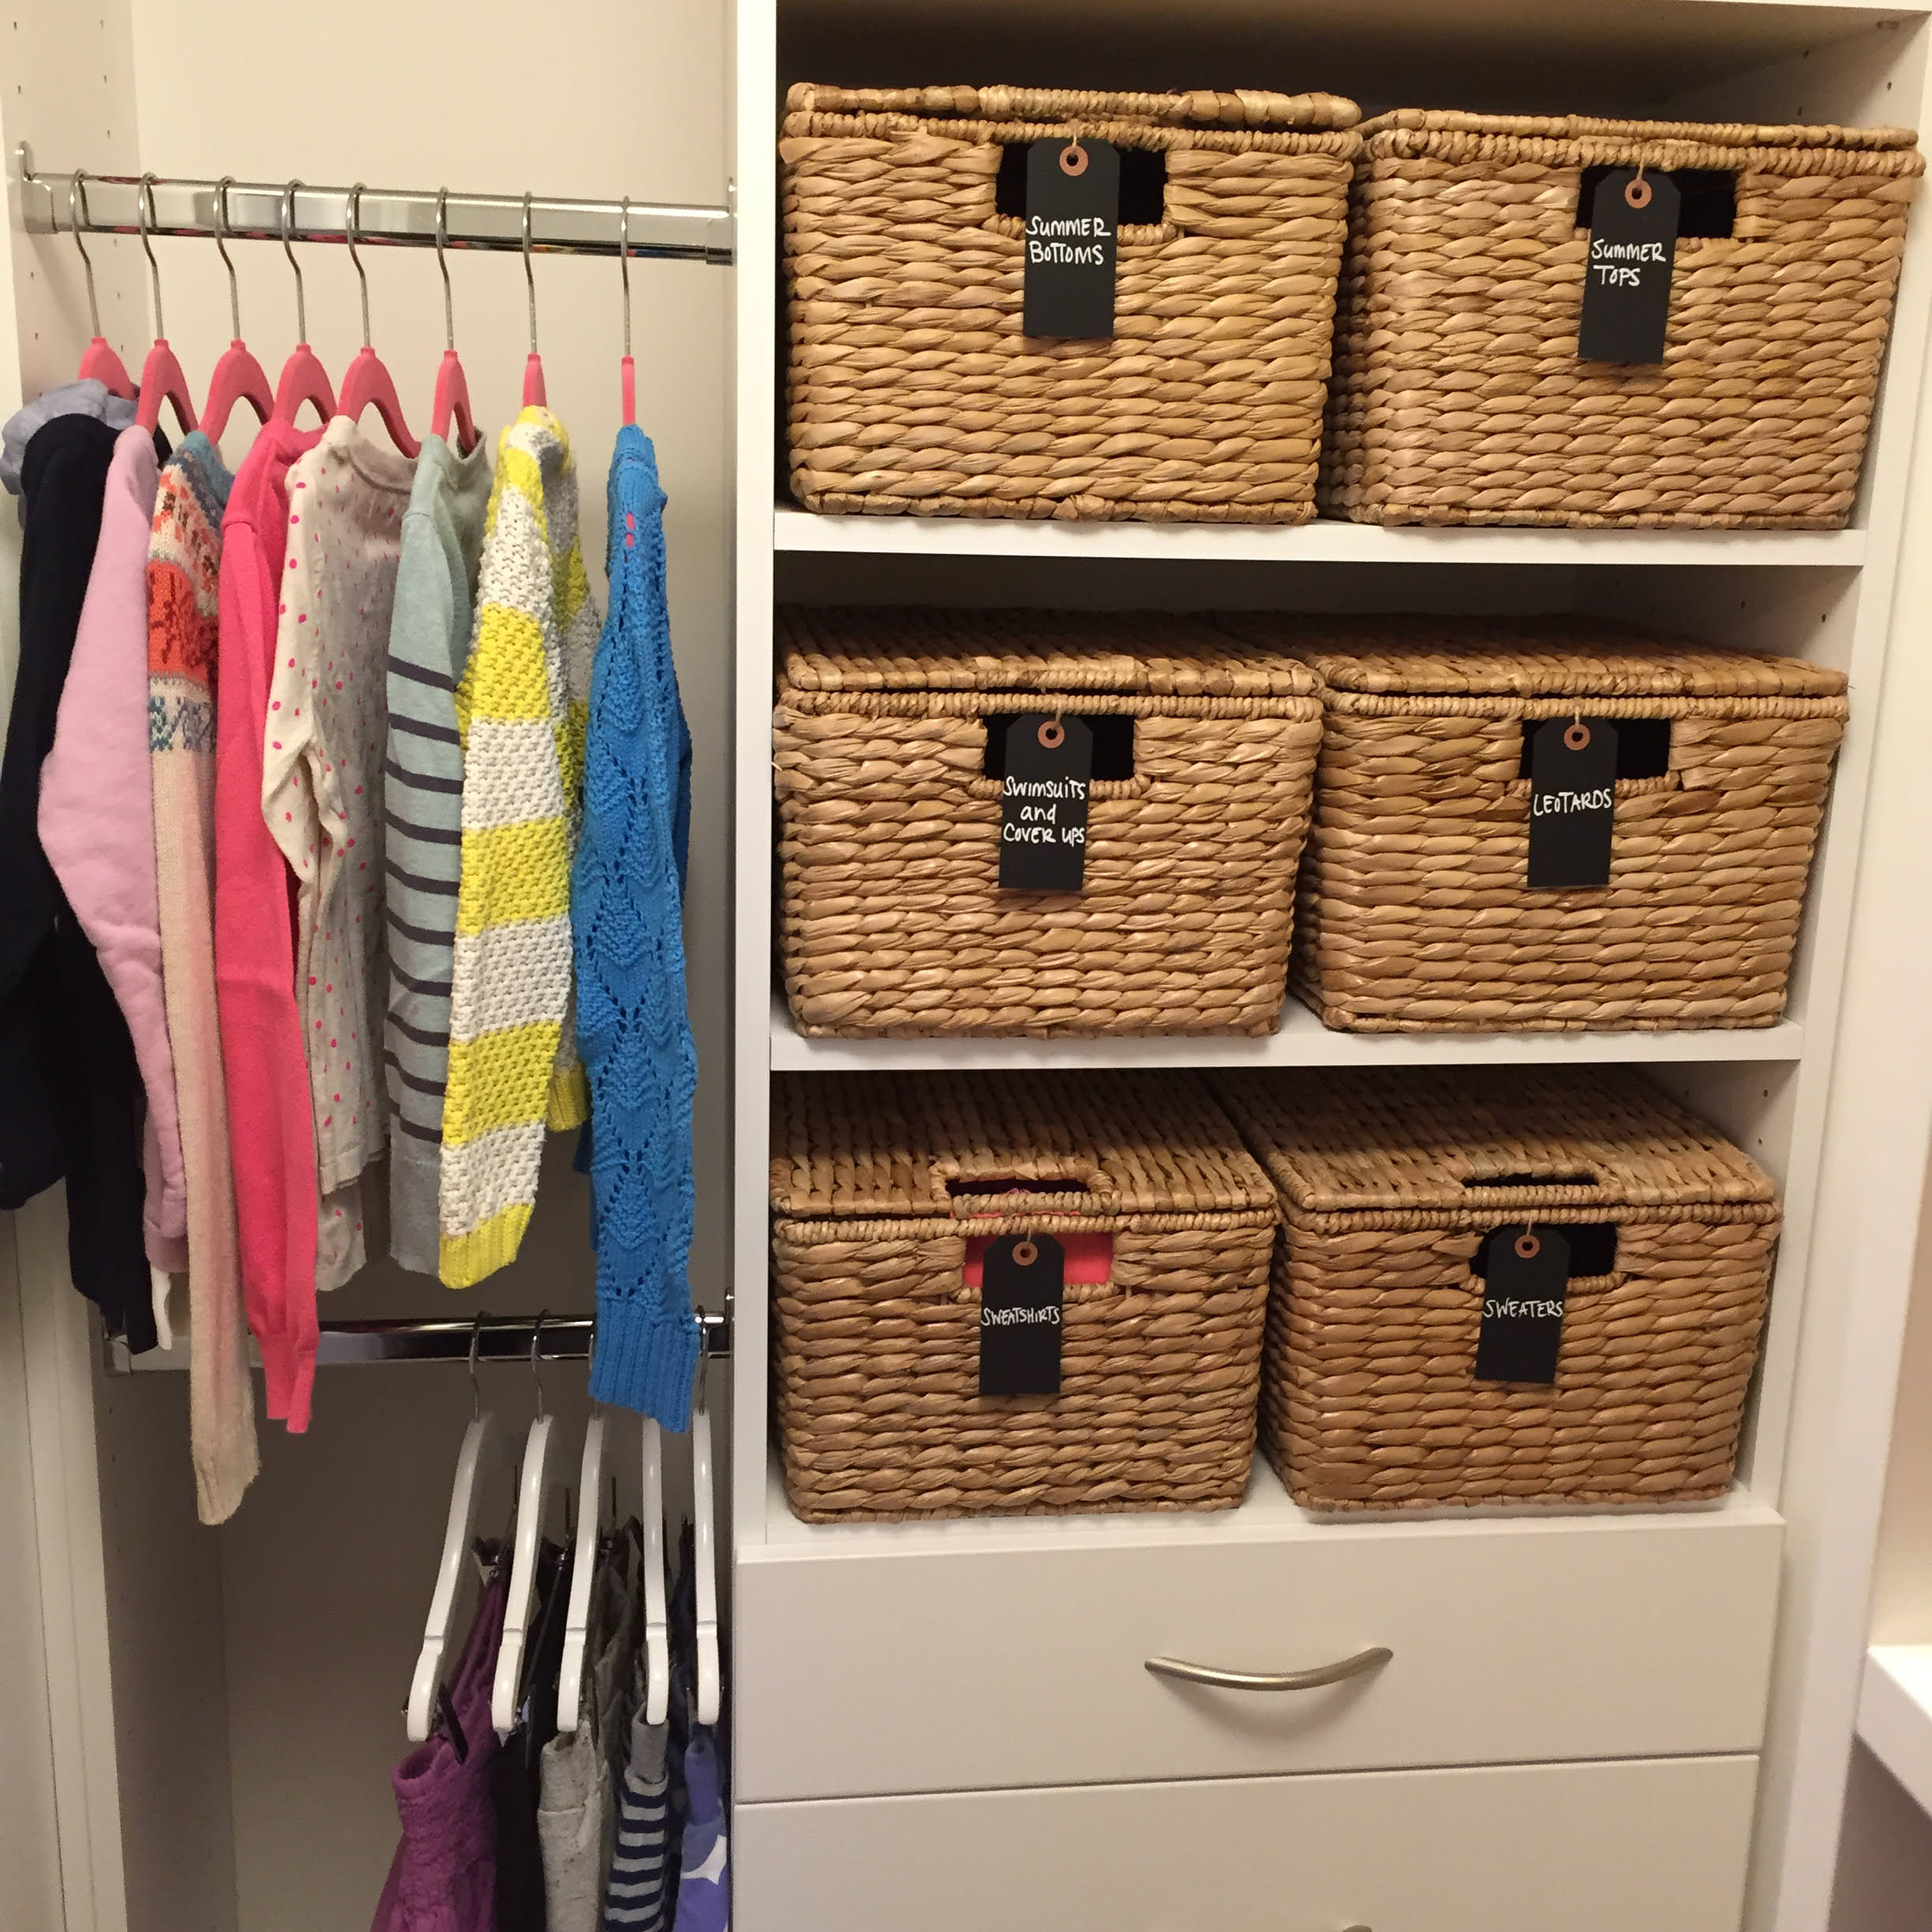 Pottery Barn, Closet, master closet, kids closet, storage, shoe storage, clothing storage, basket, basket with a lid, labeled baskets, home organization, home organizing, professional organizing, home design, home style